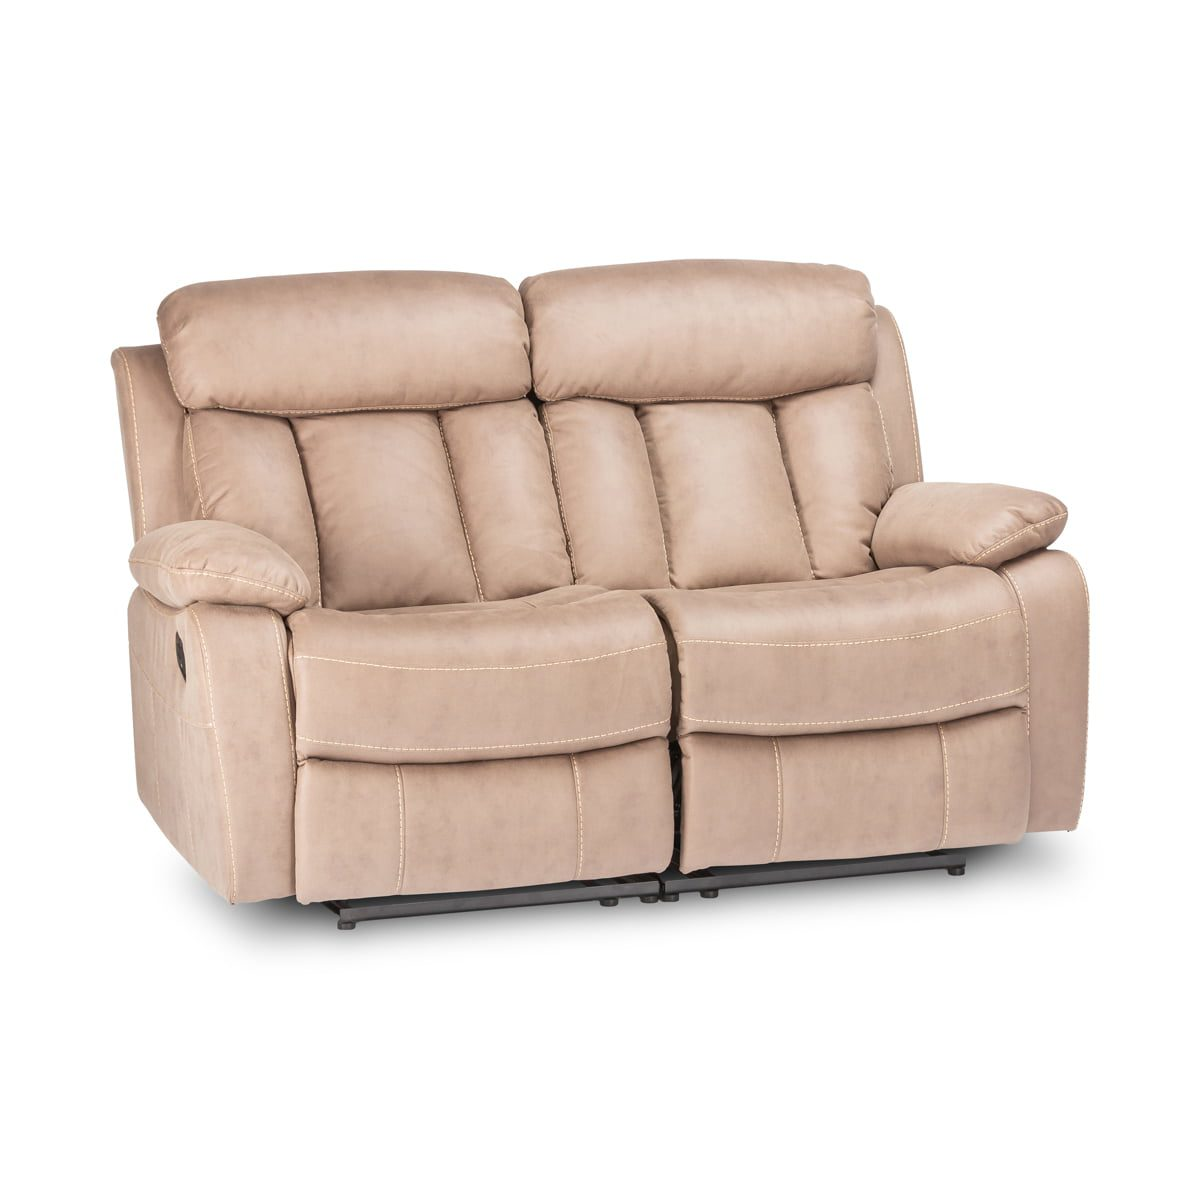 Junior Taupe 2 Seater Recliner